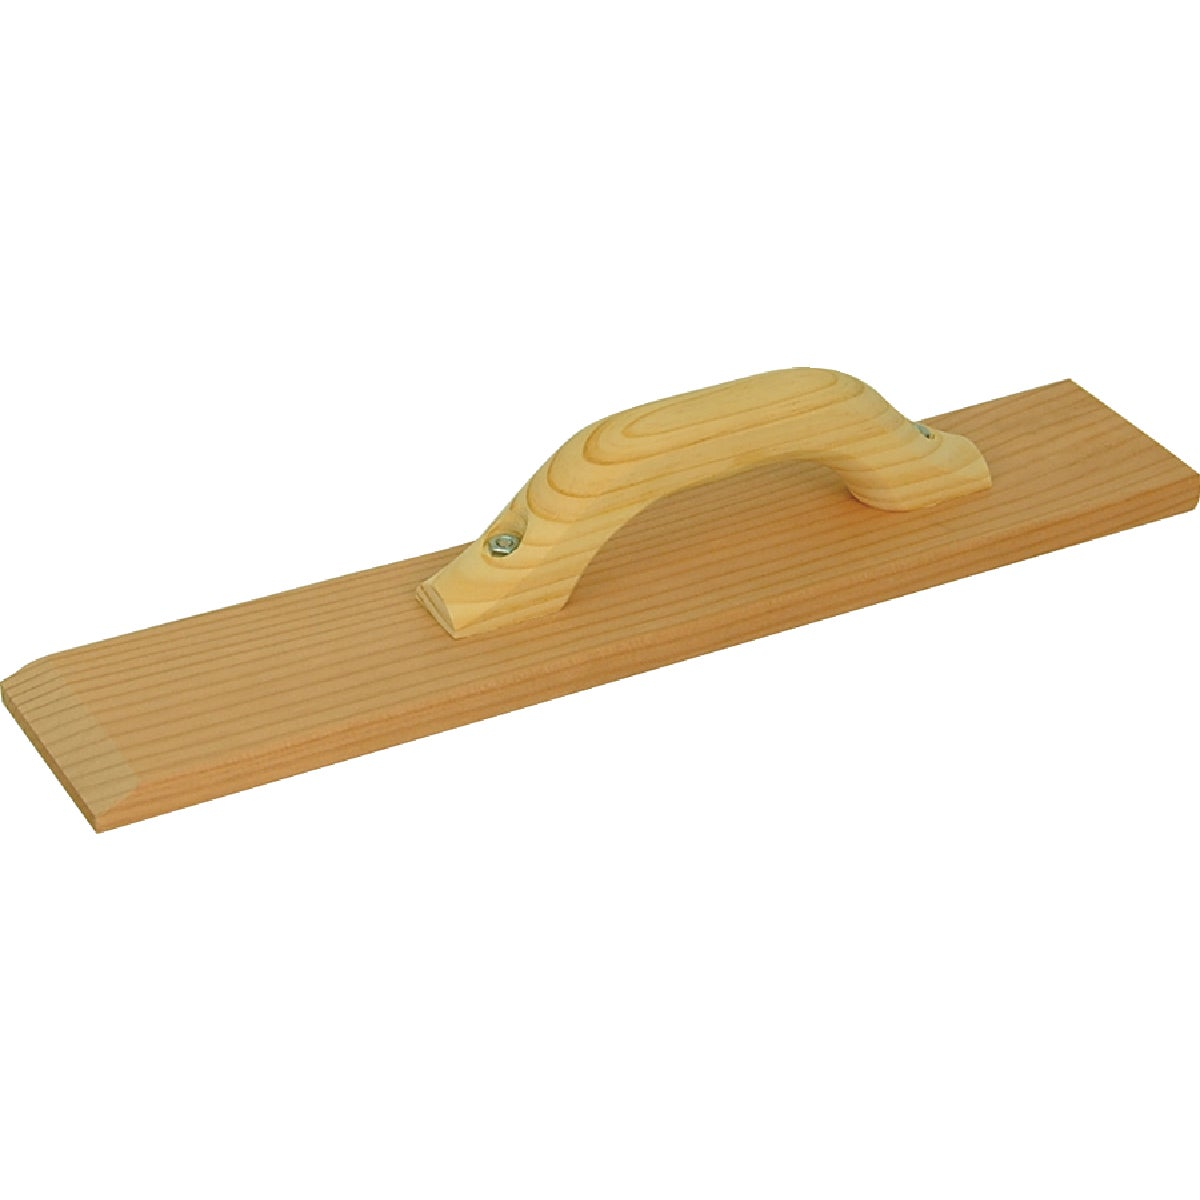 244 WOOD HAND FLOAT - 14813 by Marshalltown Trowel